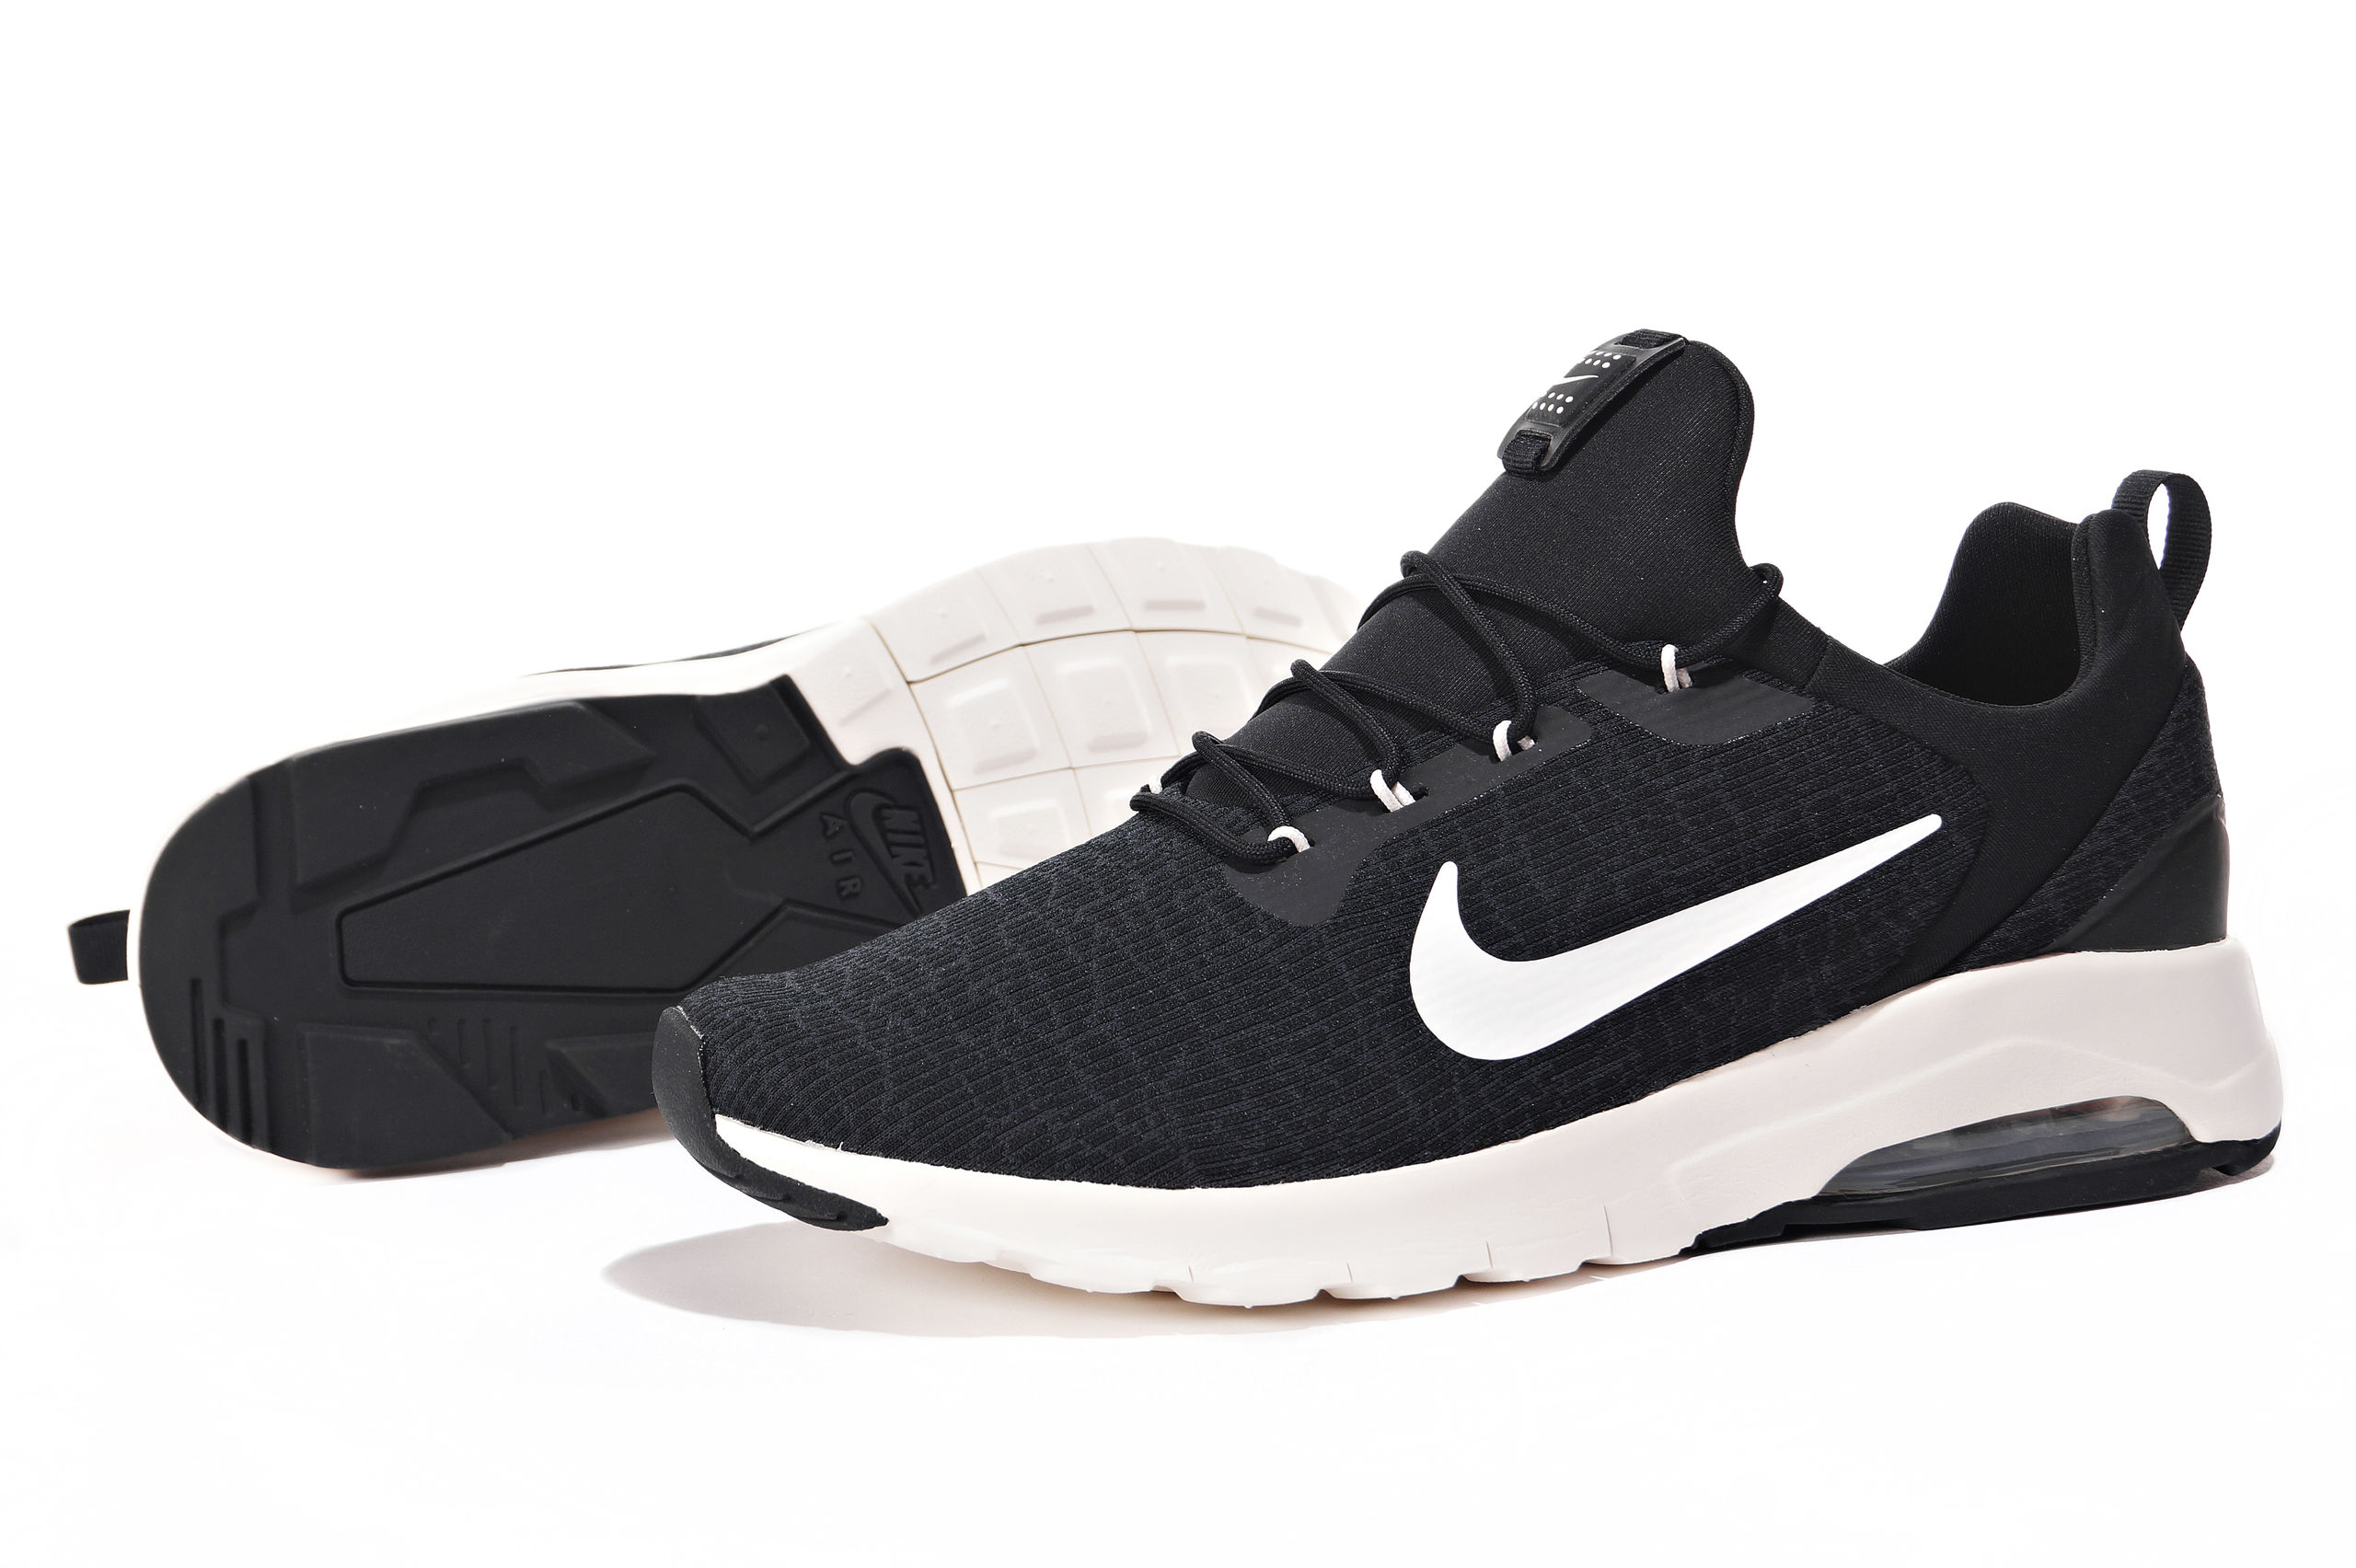 BUTY NIKE AIR MAX MOTION RACER 916771 001 R. 45.5